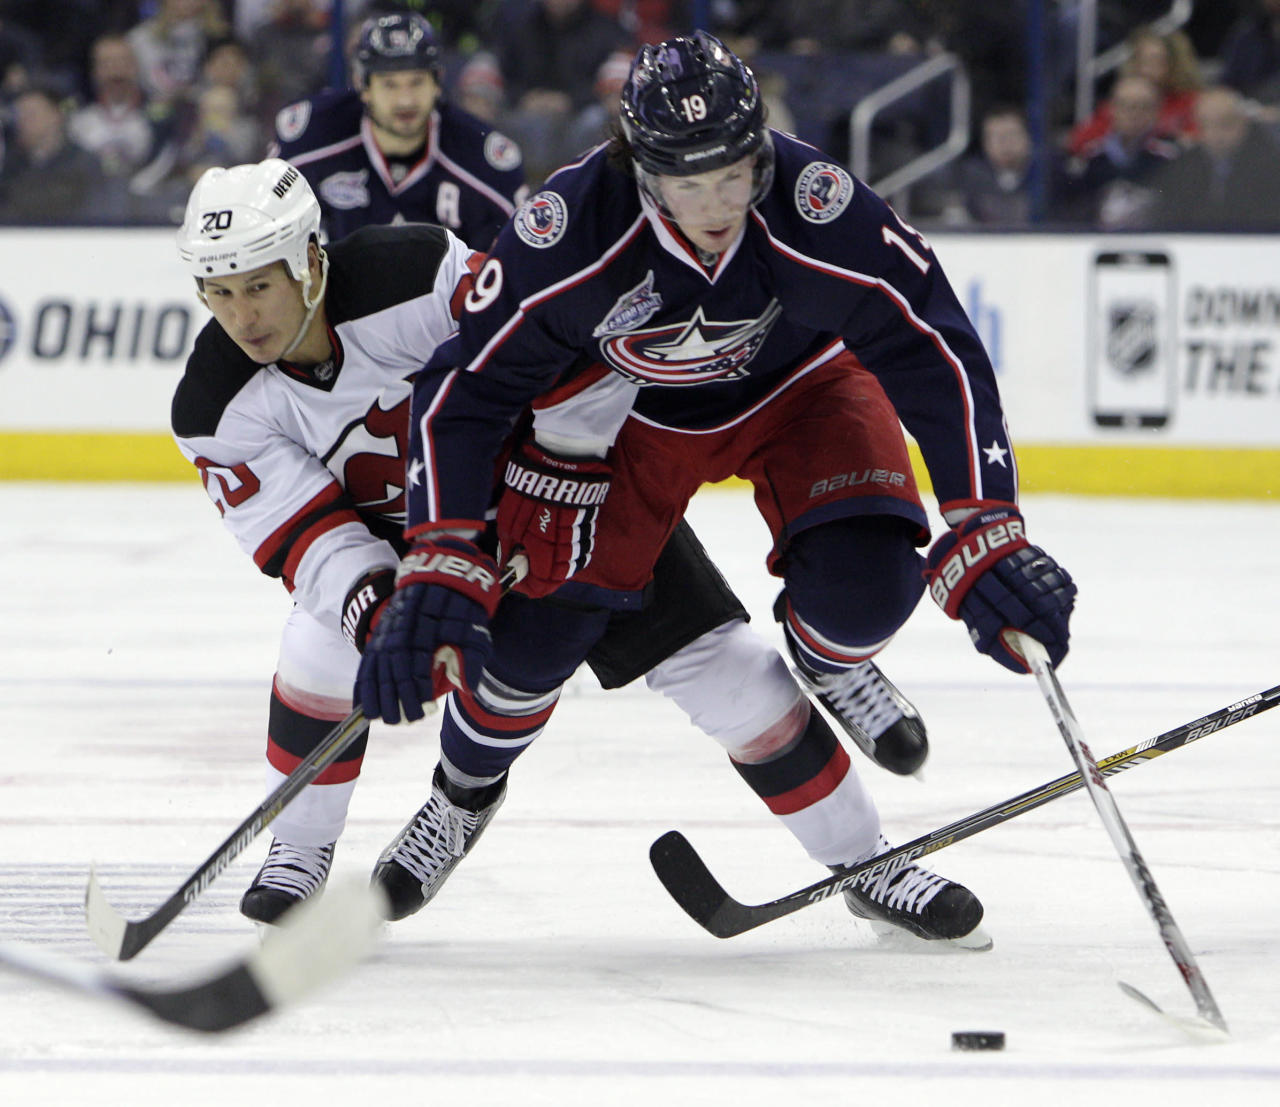 Blue Jackets have a building block duo in Saad and Johansen